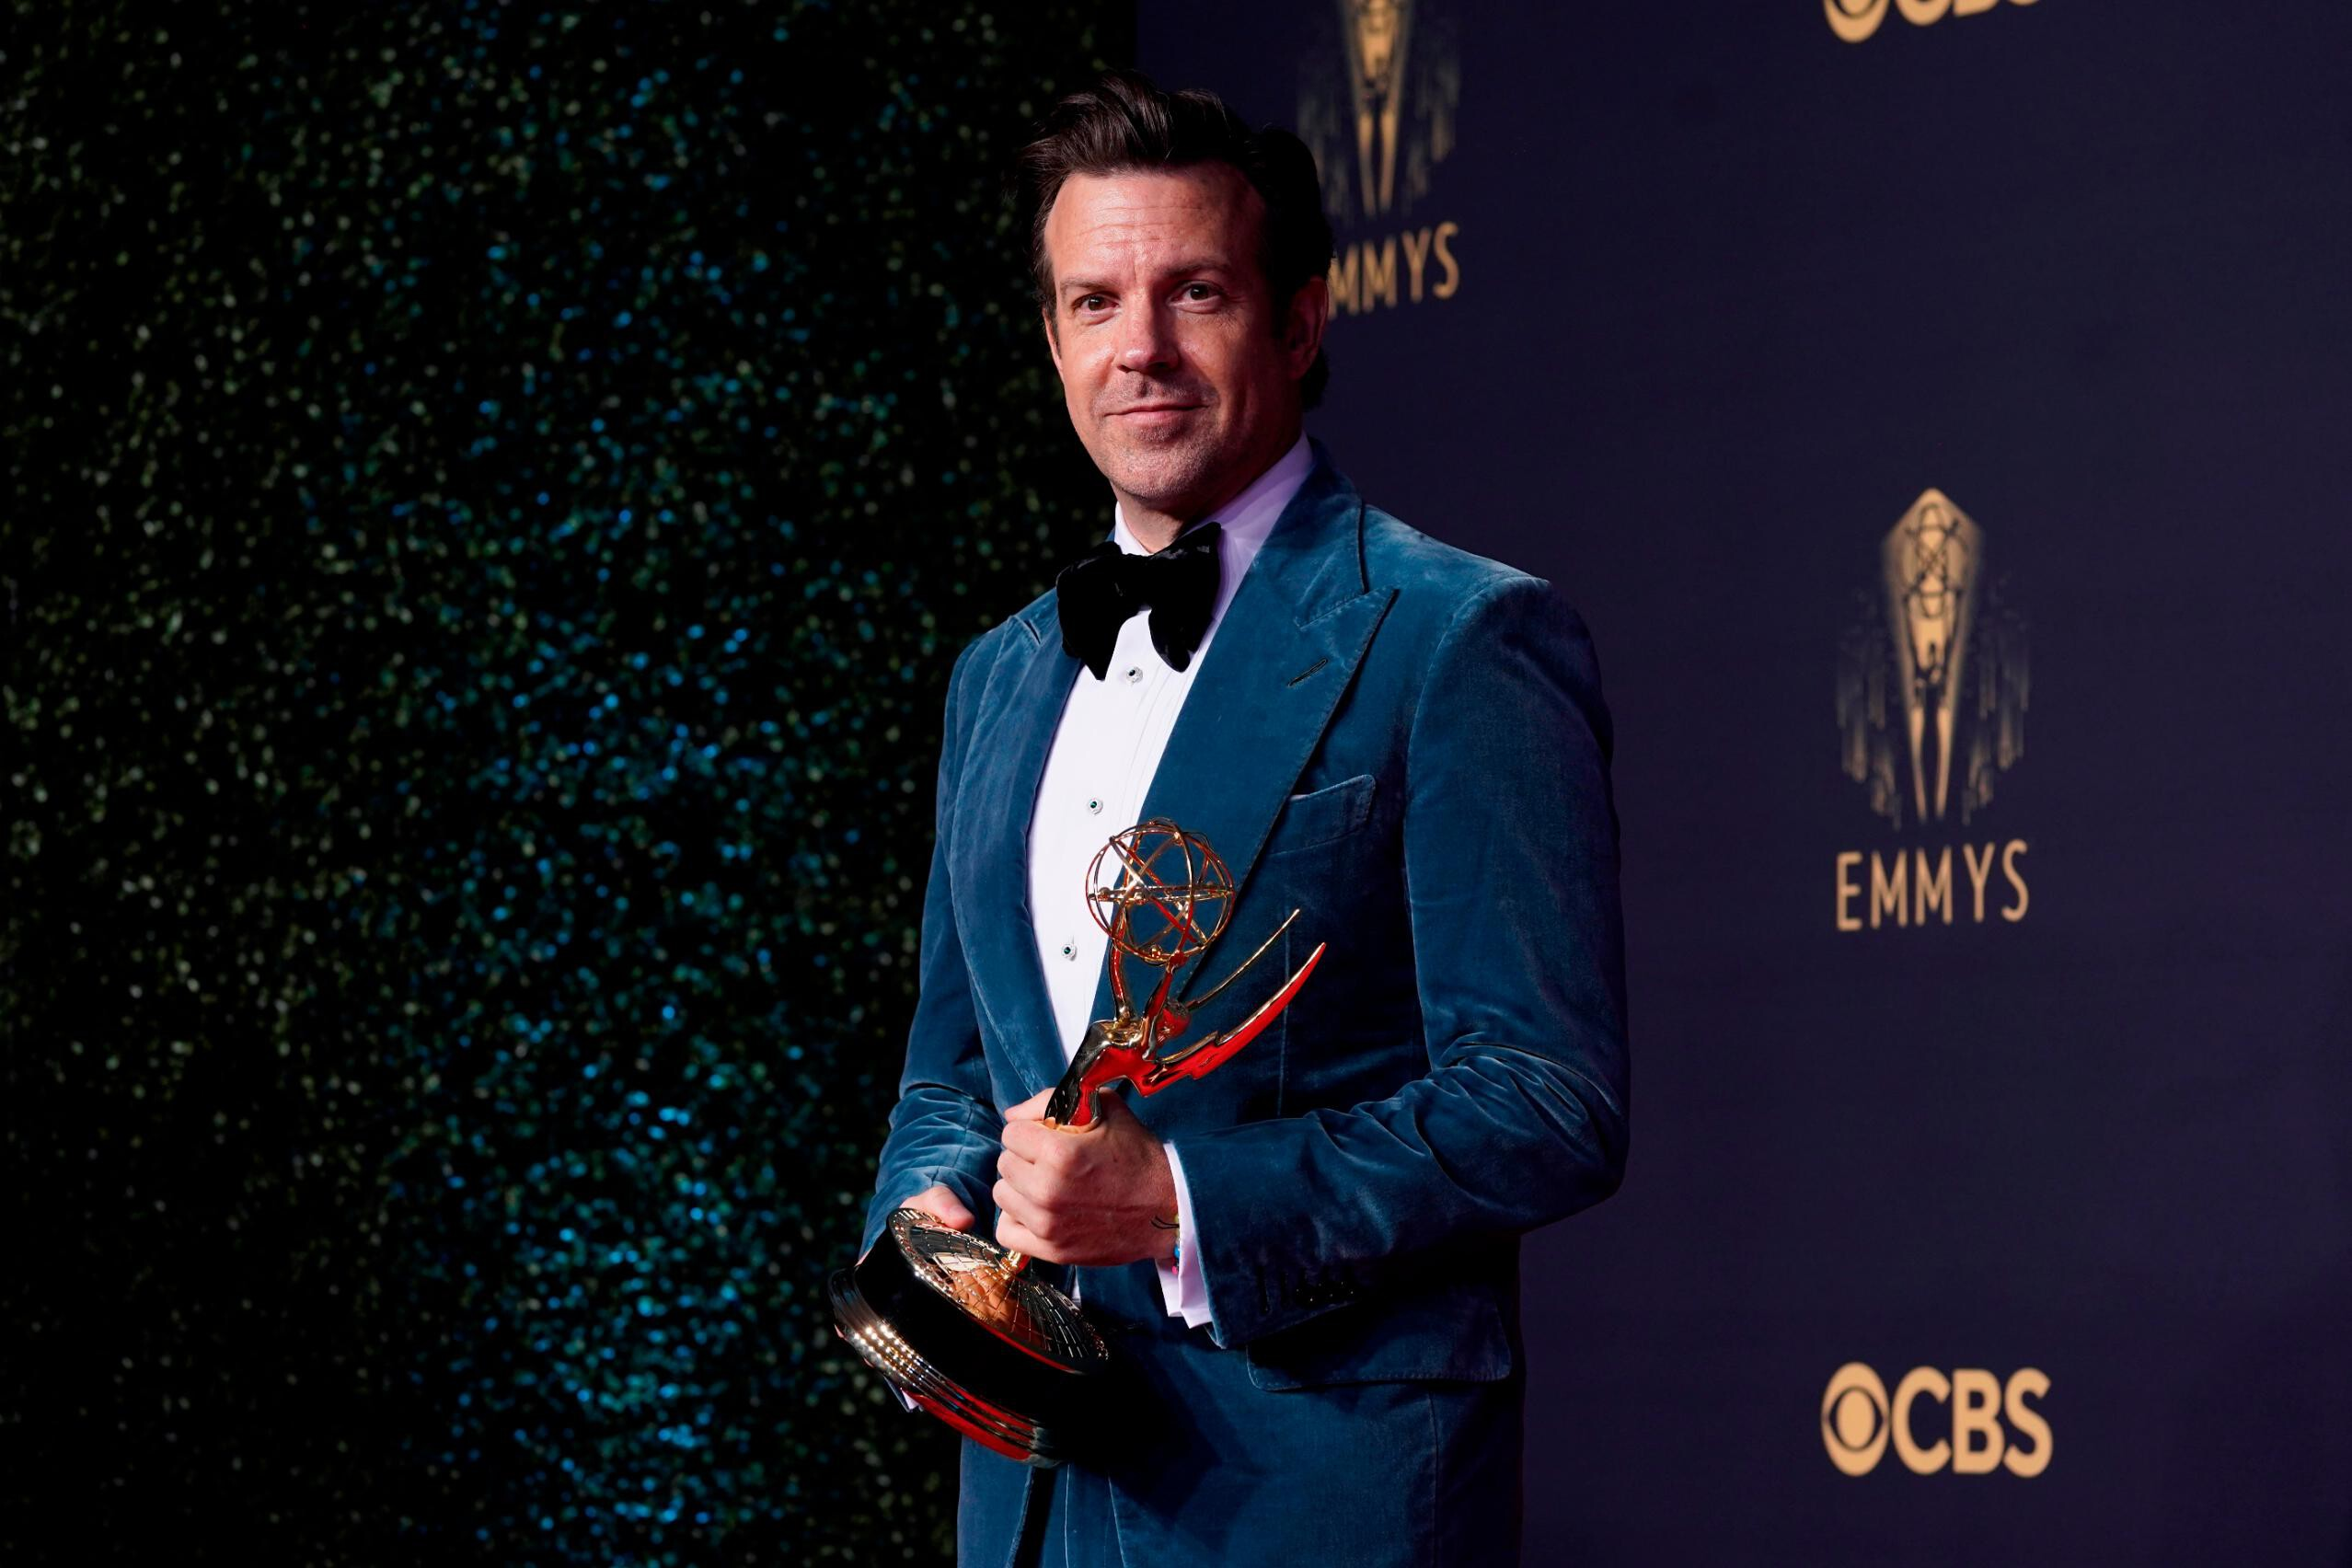 Emmys rebound from record ratings low